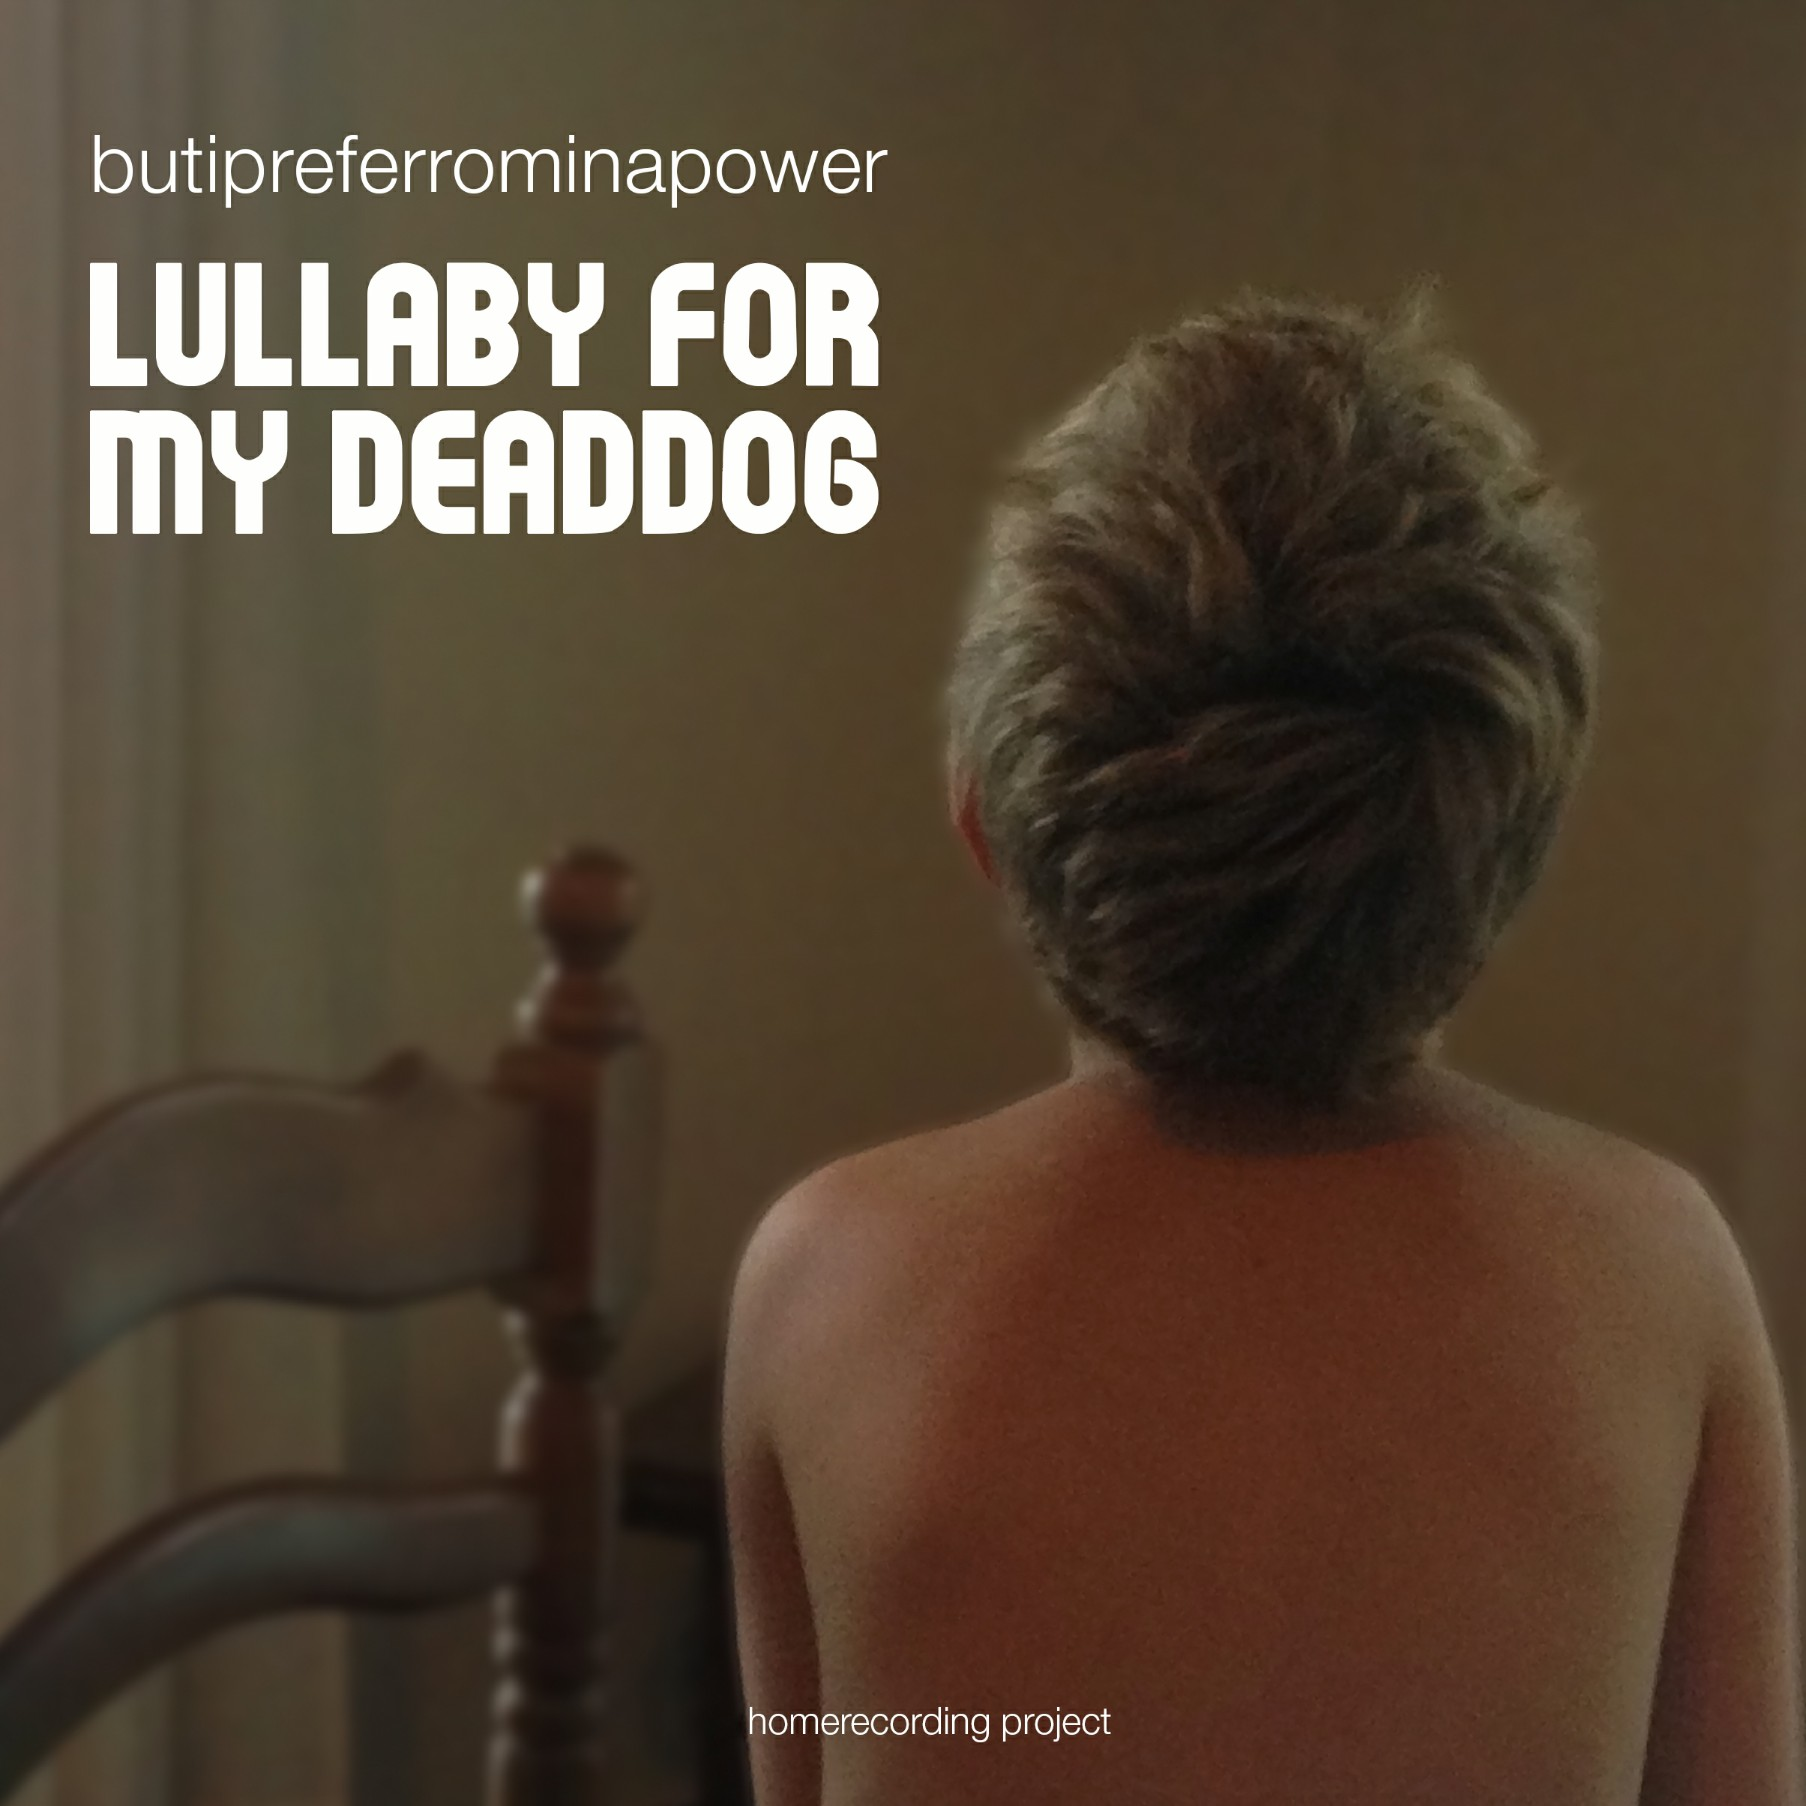 IYE19 - BUTIPREFERROMINAPOWER -  LULLABY FOR MY DEADDOG 1